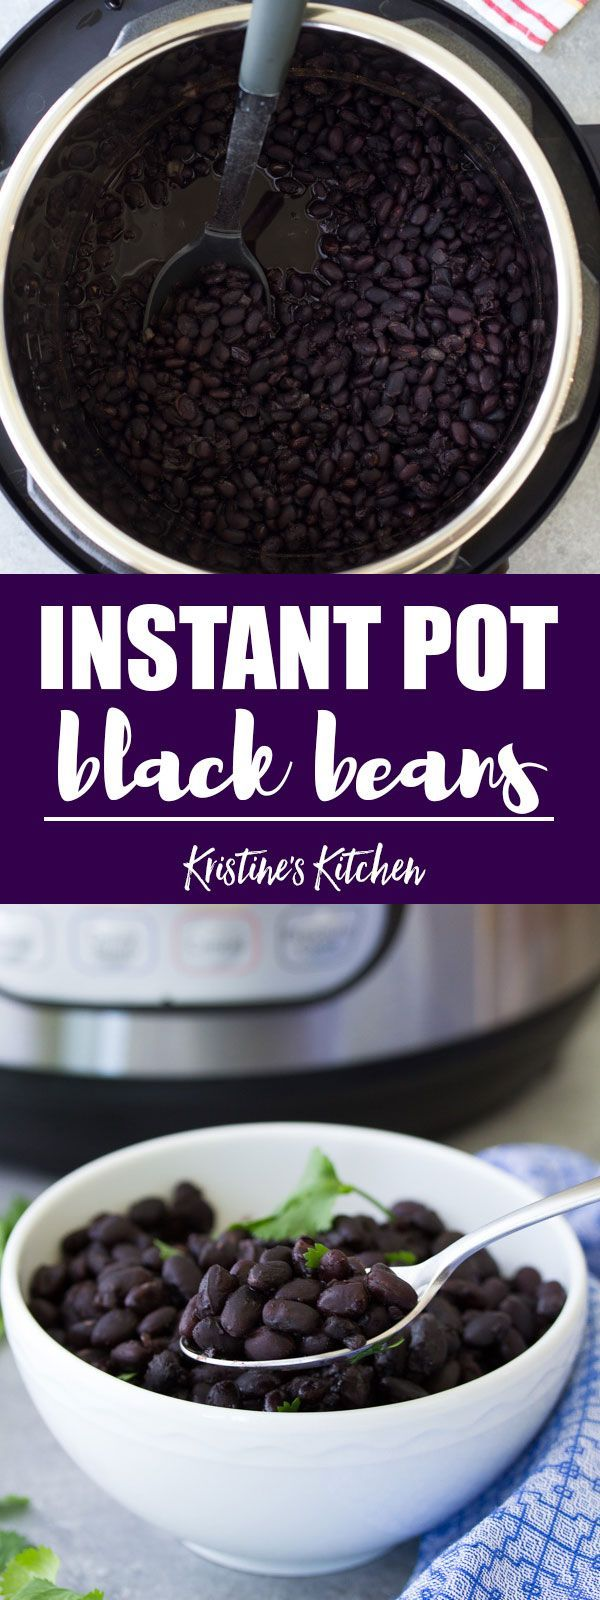 These Mexican black beans are easy to make in your Instant Pot or pressure cooker, with no soaking required! These Instant Pot Black Beans freeze well so you can meal prep a big batch. This post also includes directions for how to cook dried black beans in your Instant Pot for baking (without seasoning). Recipe is vegan and an easy way to cook dried beans. #instantpot #pressurecooker #mealprep